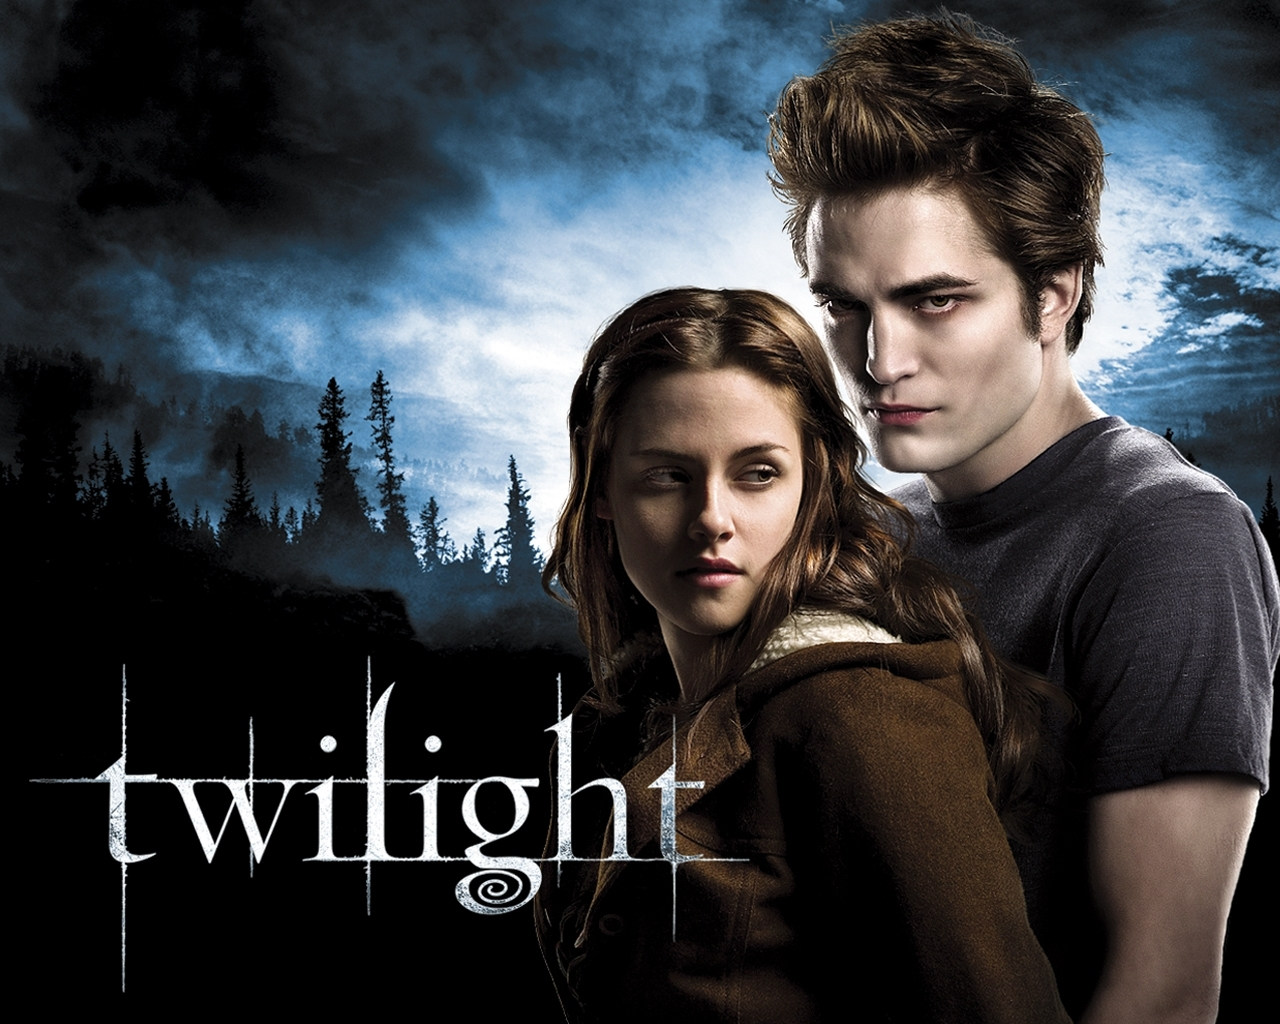 Edward and bella images twilight hd wallpaper and Twilight edward photos